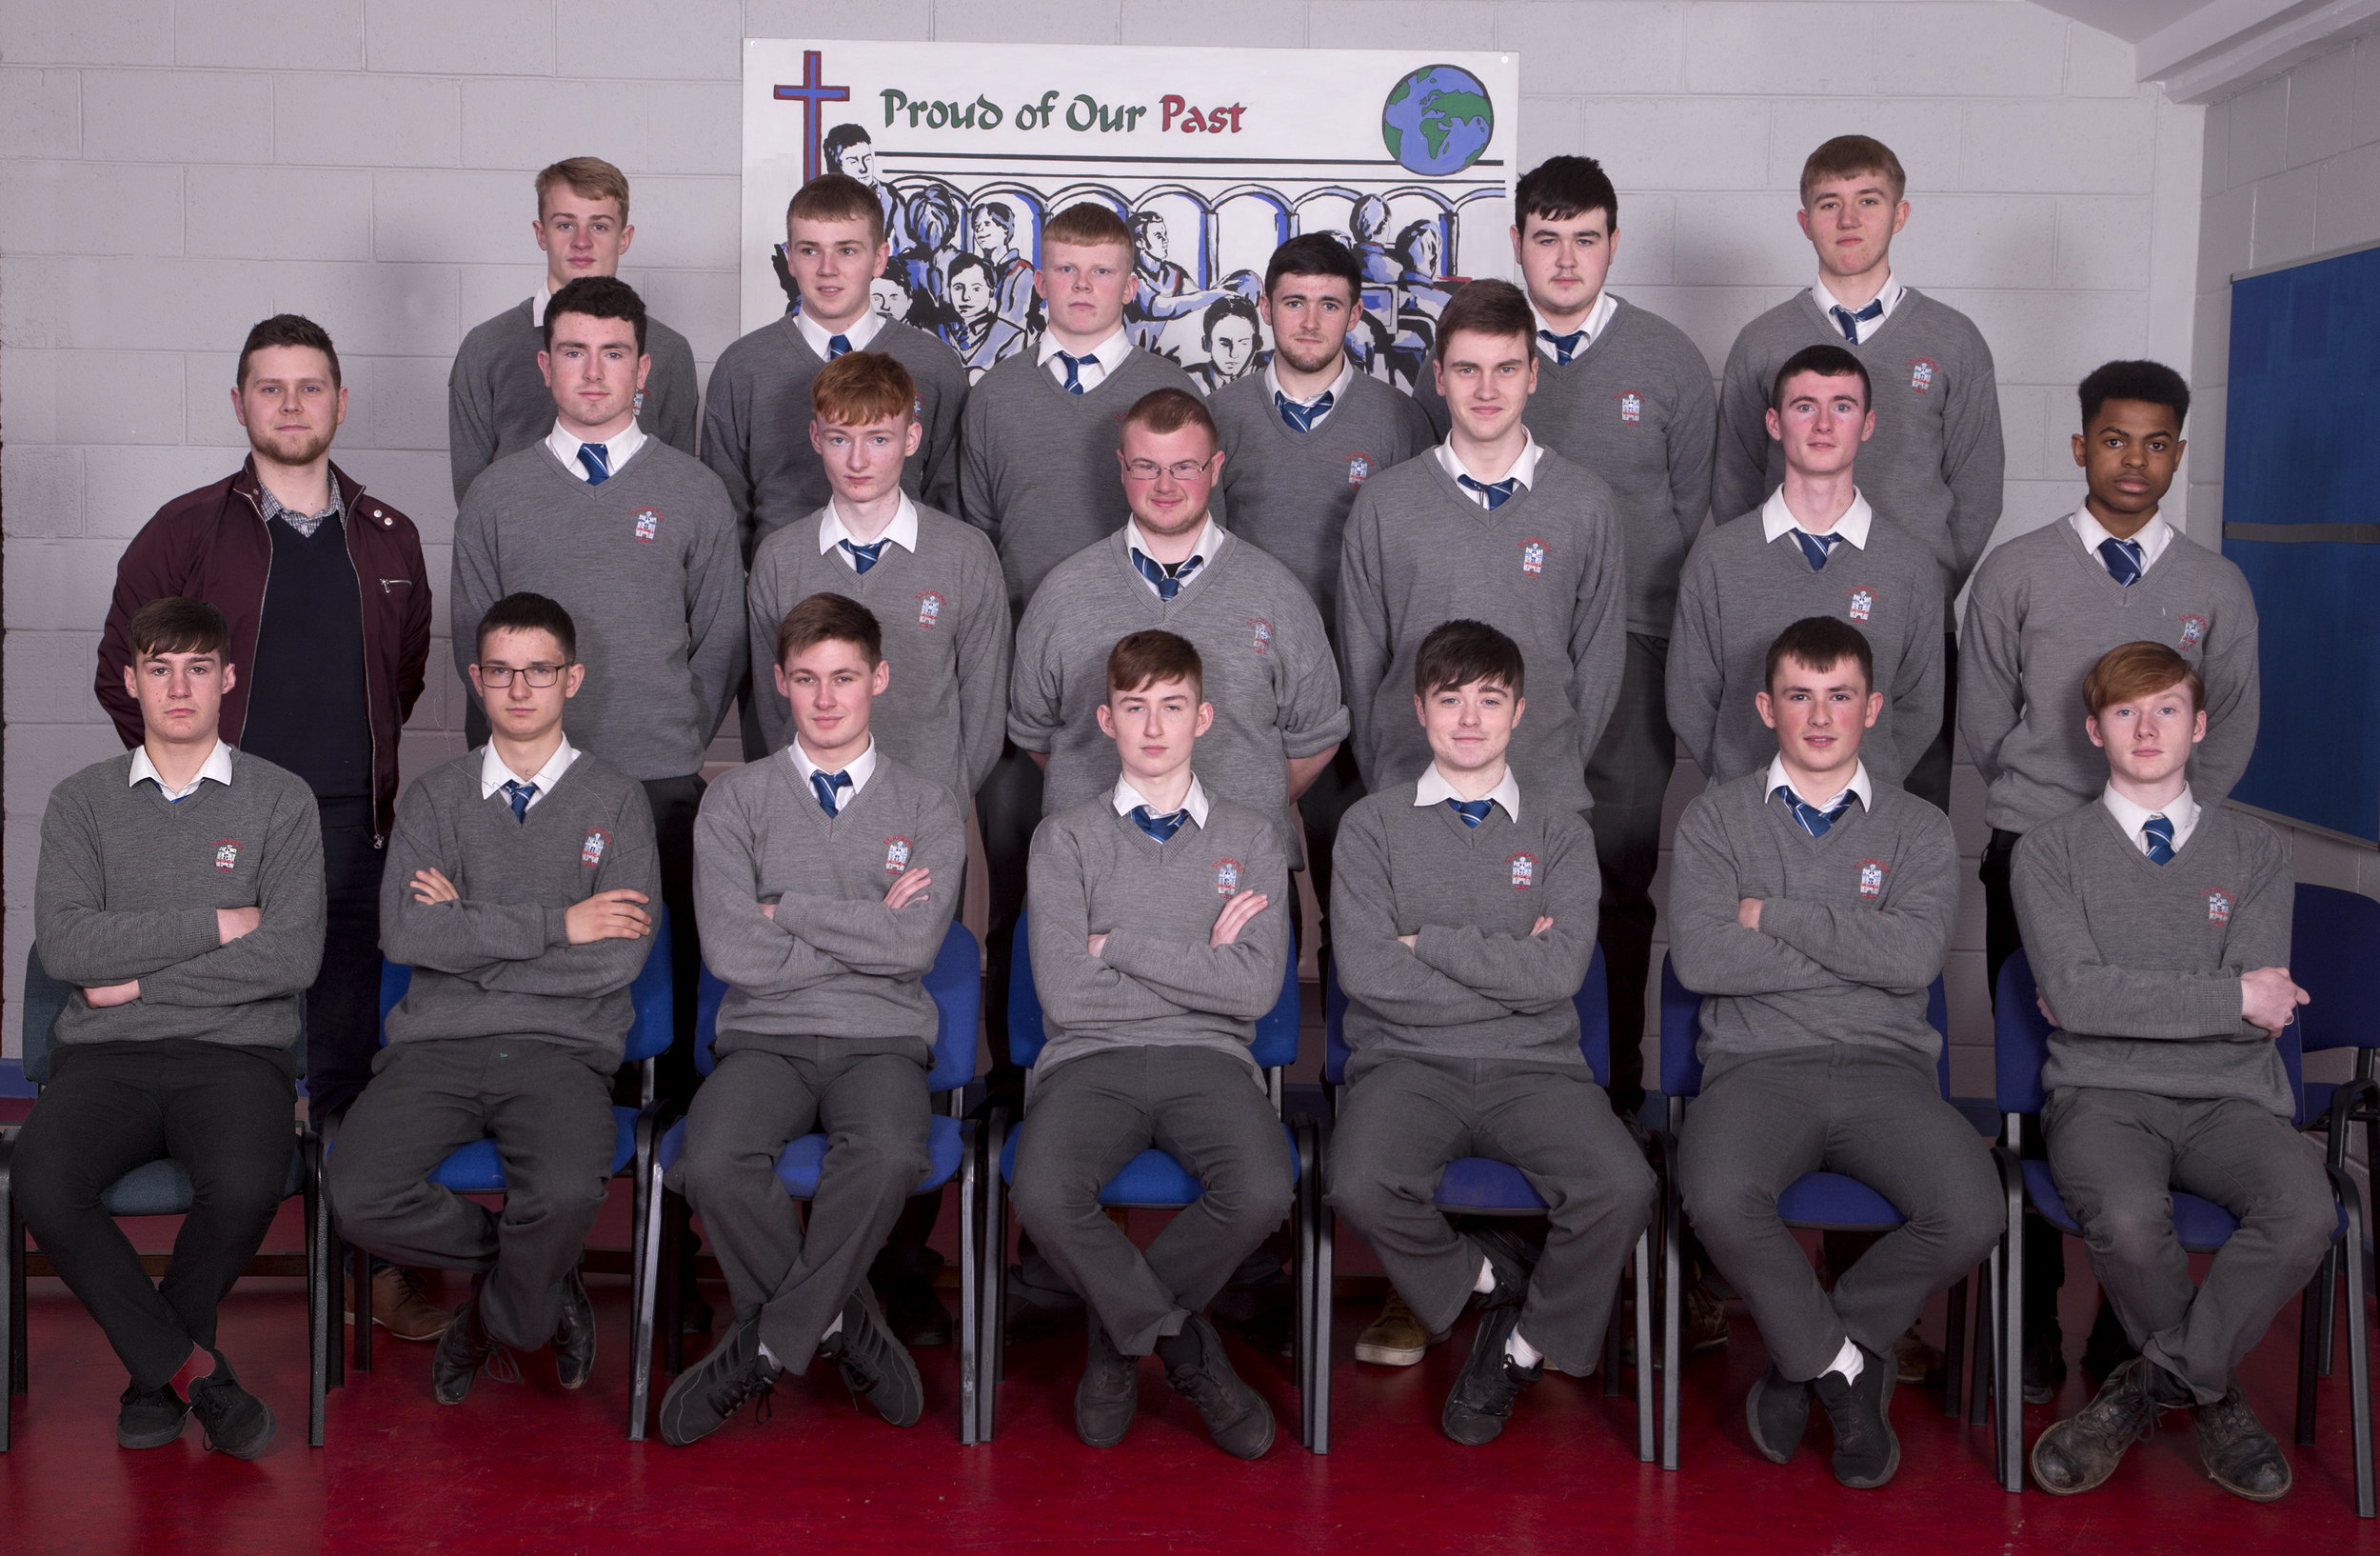 6.2 2018 Class   Back row: Shane Hickey, Camon Balfe, Jayme Hatch Hyde, Adam Smith, Ciaran Breen, Oskar Juszczyk.  Middle row: Mr O Brien, Ciarán McCann, Cian Flood, Adam McCann, Cathal Laverty, Matthew Askins, Hawal Badru.  Front row: Ryan Walsh, Raivo Lebedevs, Jack McCullough, Billy Gibney, Ciaran Harmon, Evan Morgan, David Delaney.